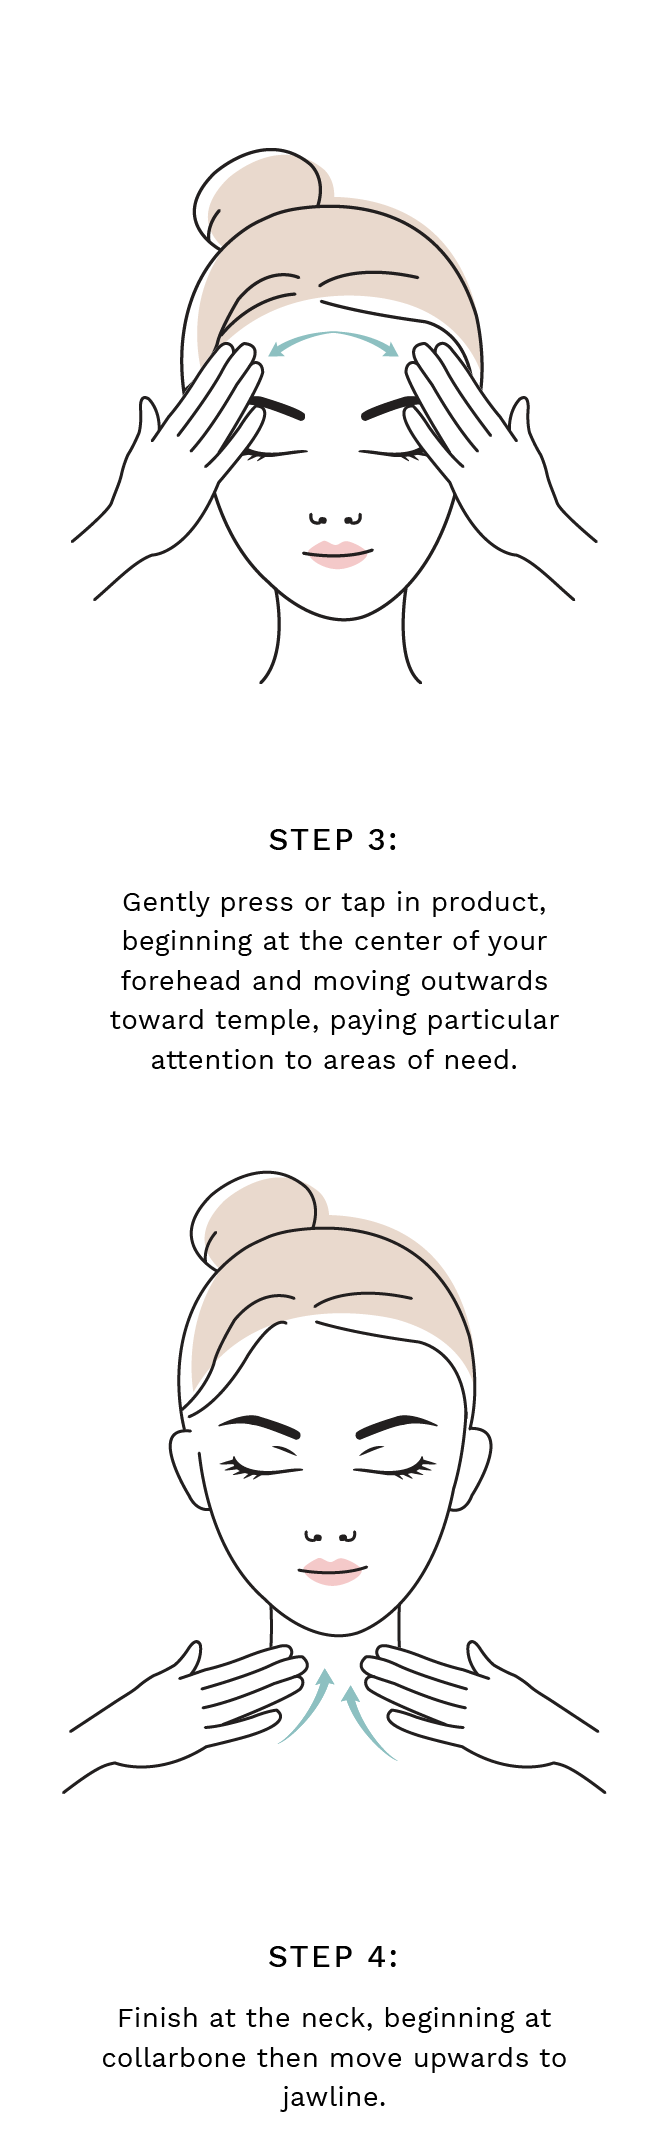 Step 3: Gently press or tap in product, beginning at the center of your forehead and moving outwards toward temple, paying particular attention to areas of need. Step 4: Finish at the neck, beginning at collarbone then move upwards to jawline.